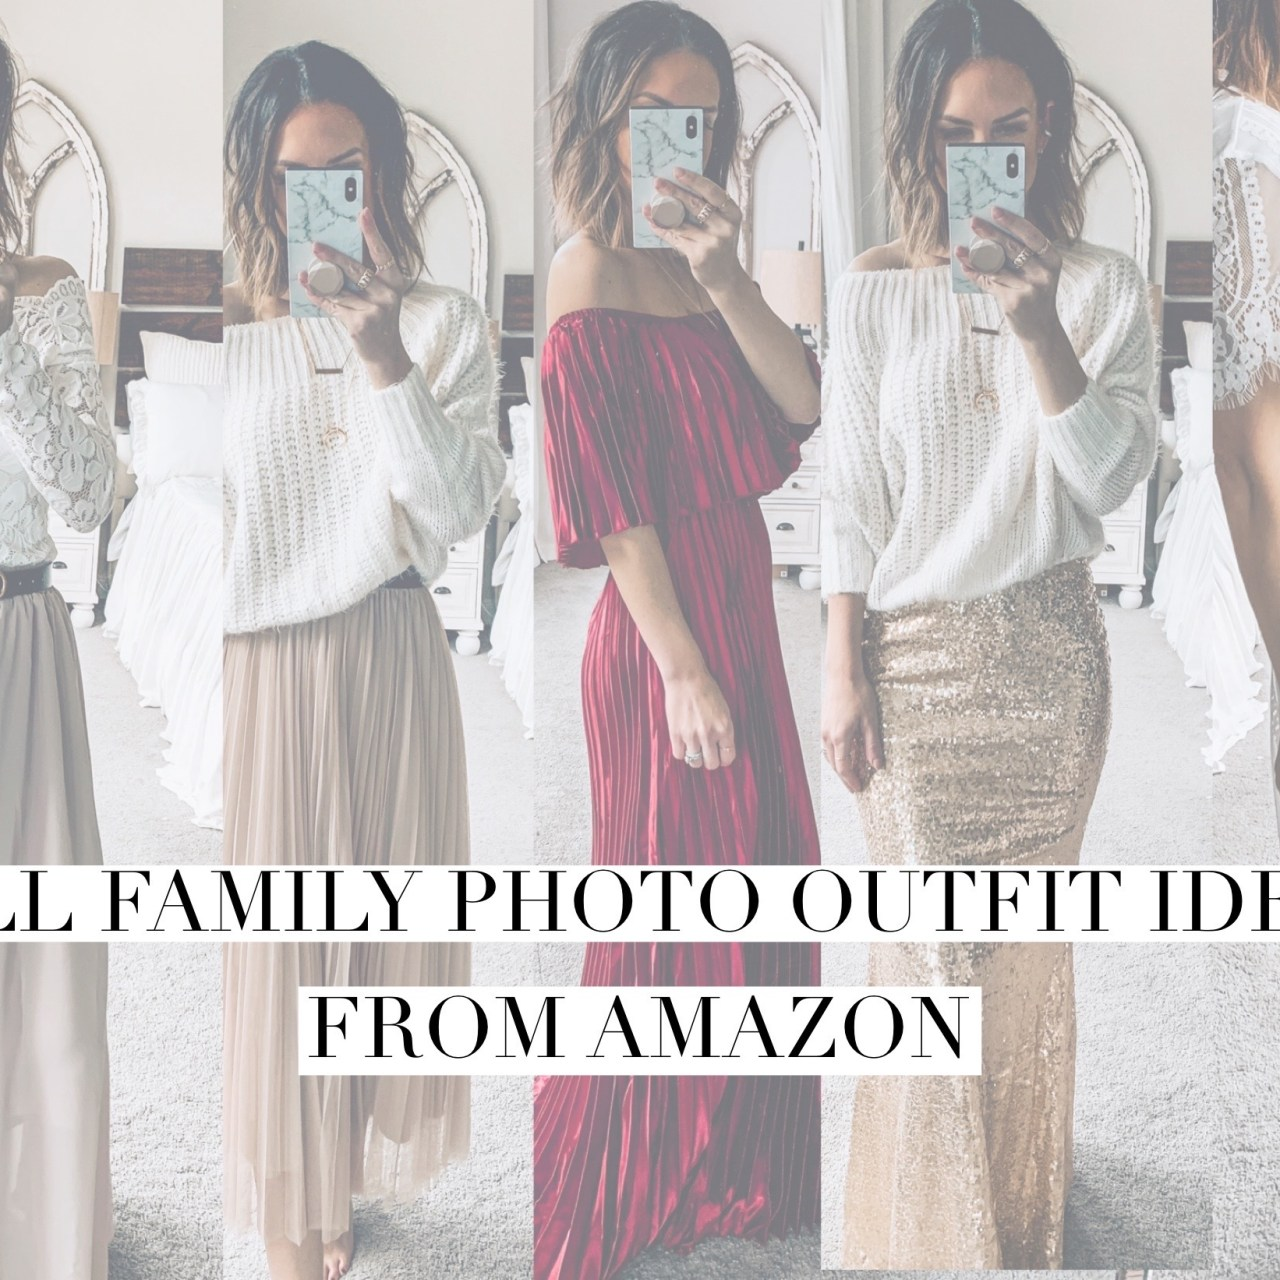 Fall Family Photo Outfit Ideas from Amazon